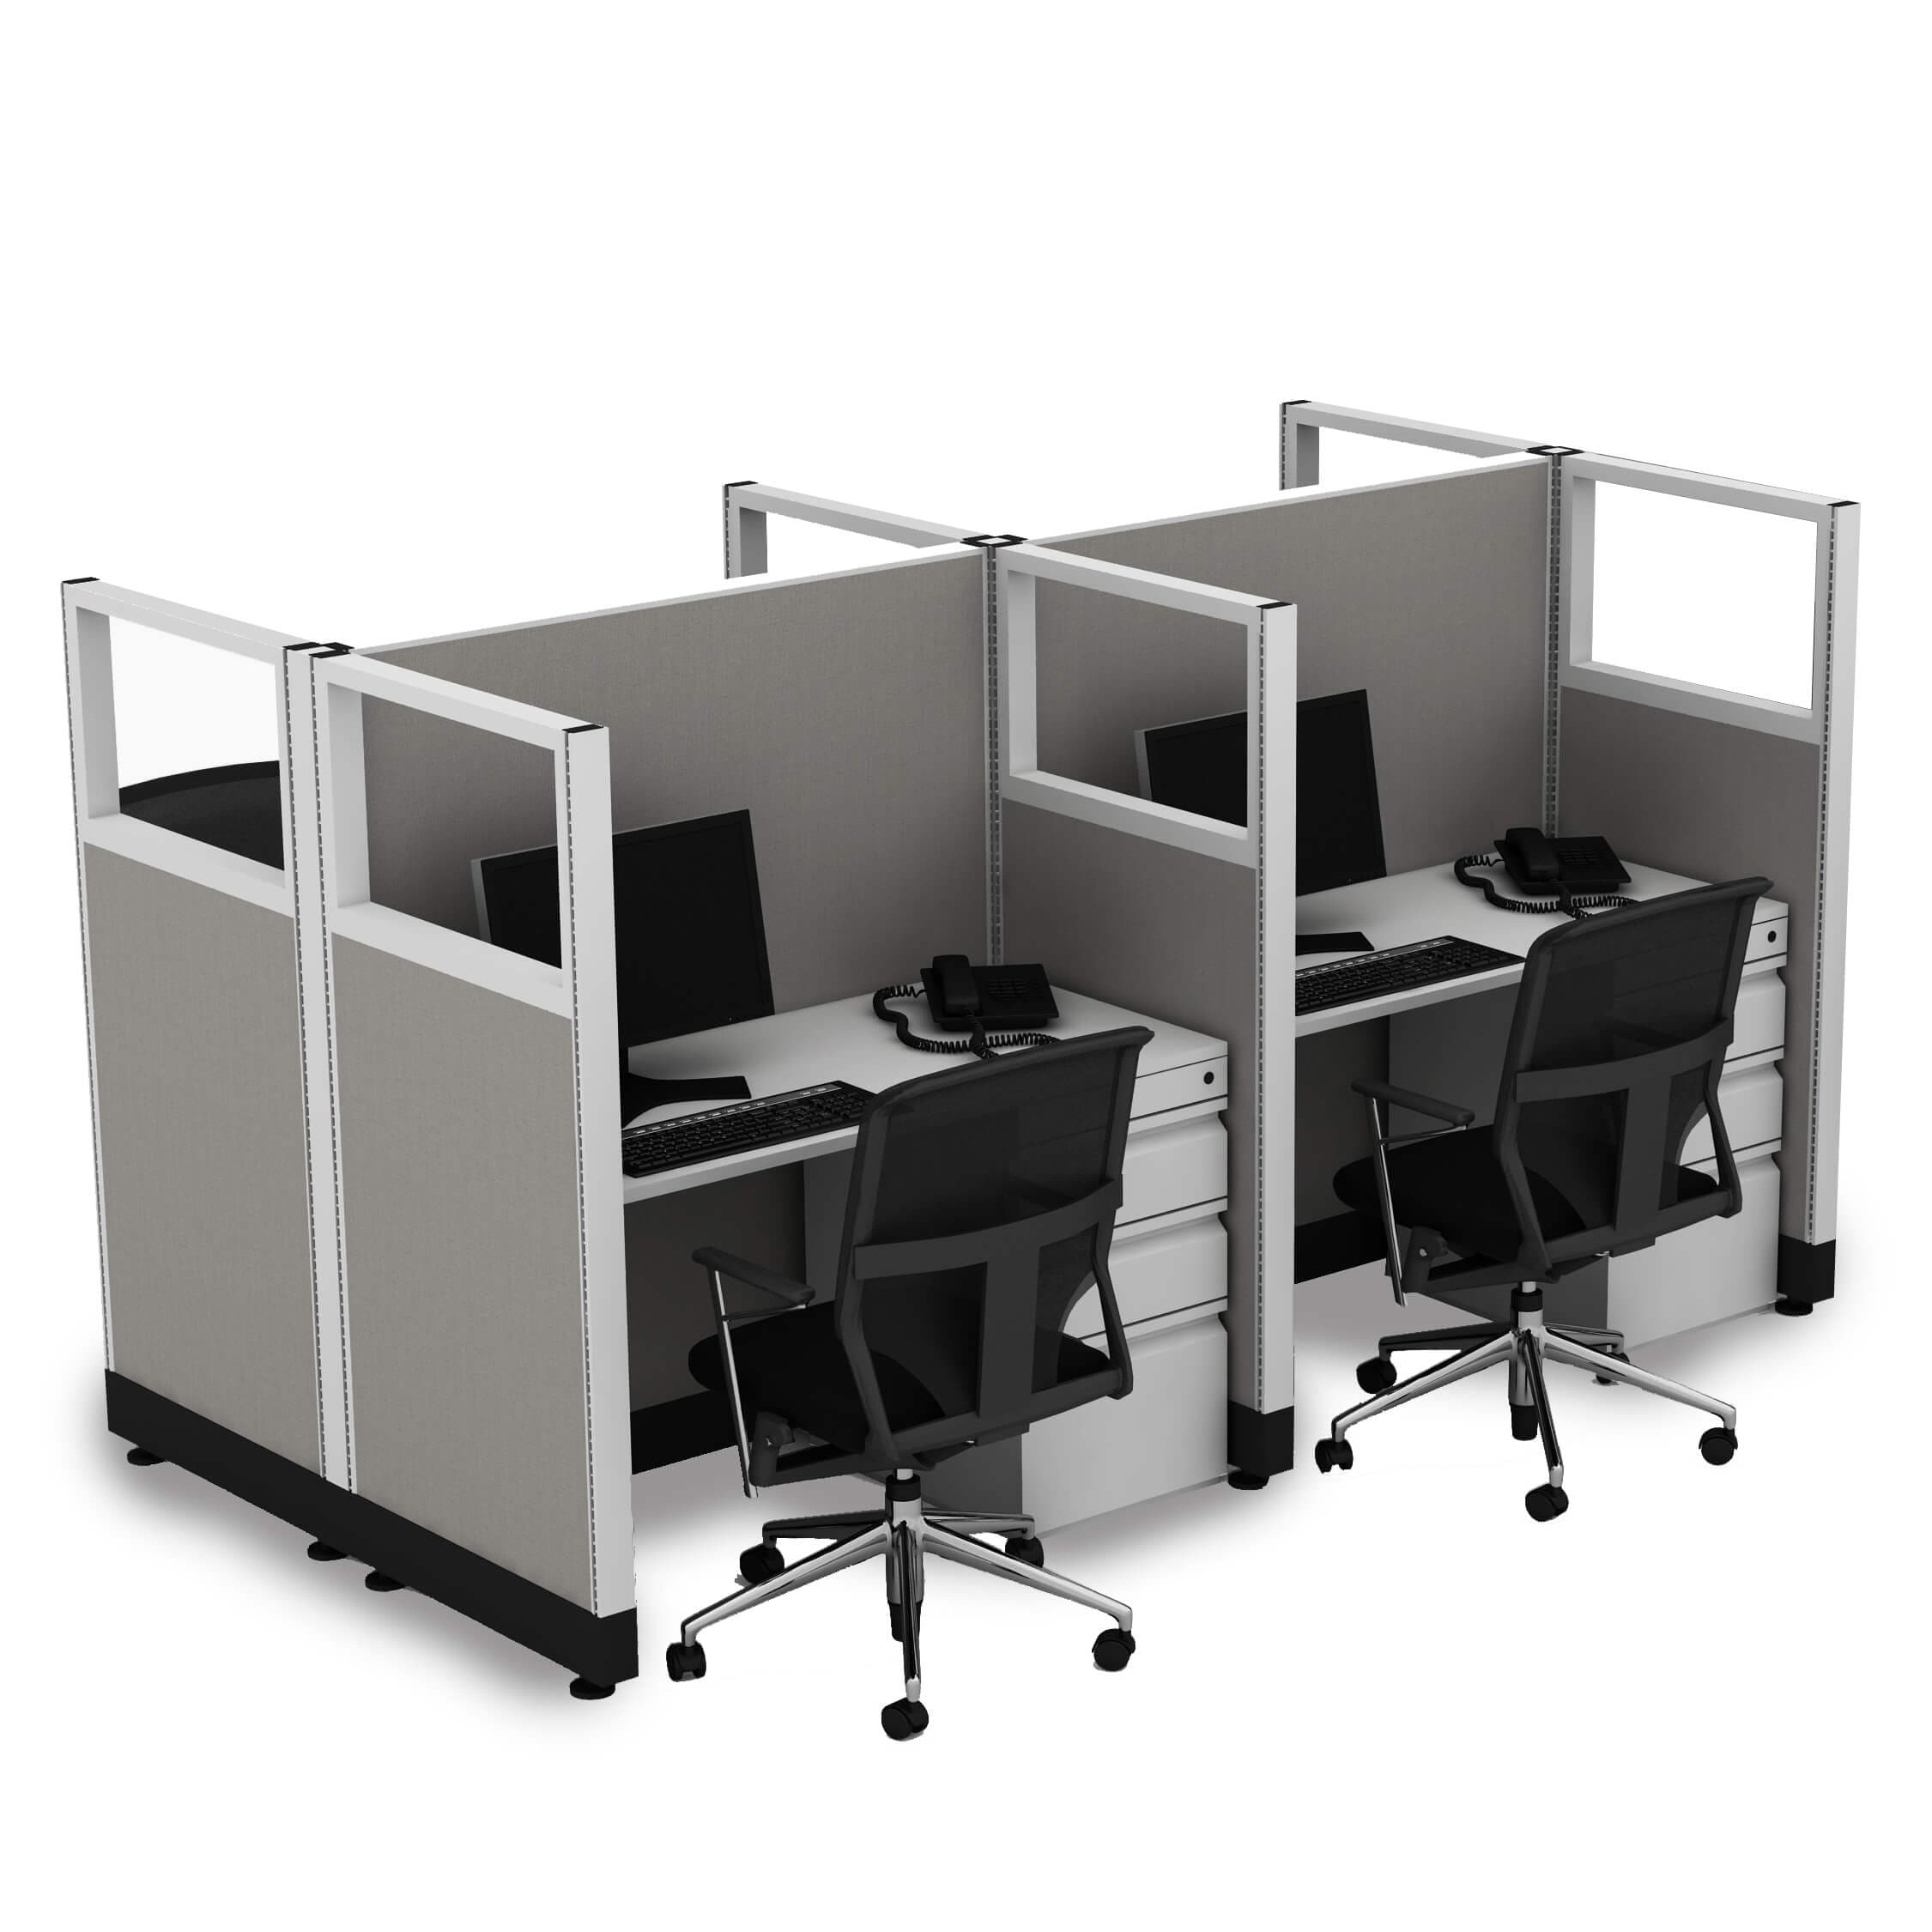 Cubicle Workstations 53H 4pack Cluster Powered (2x3 - White Desk White Paint - Assembly Required)